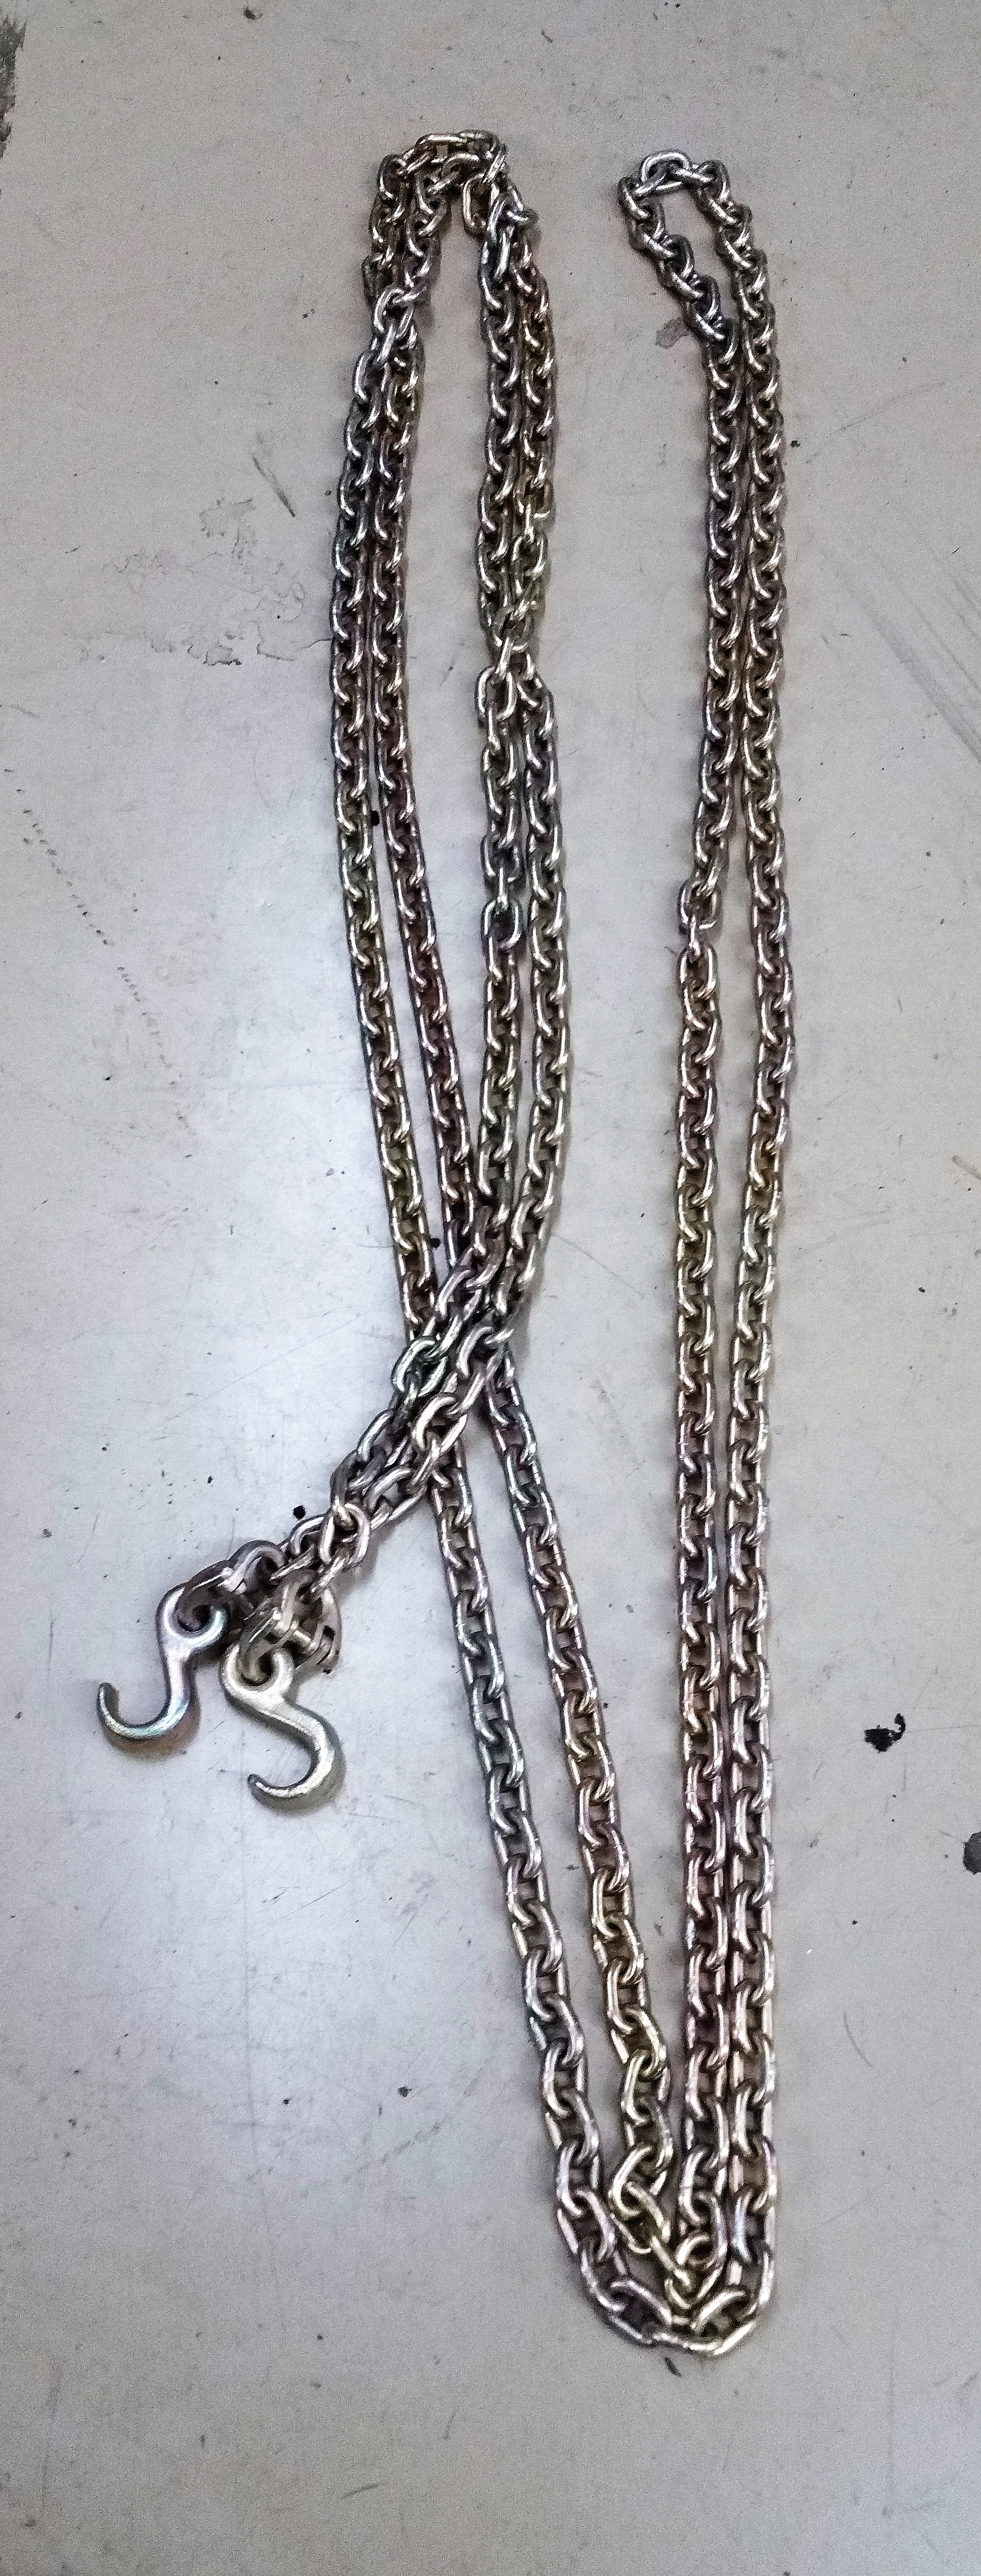 Military Chain with Hooks